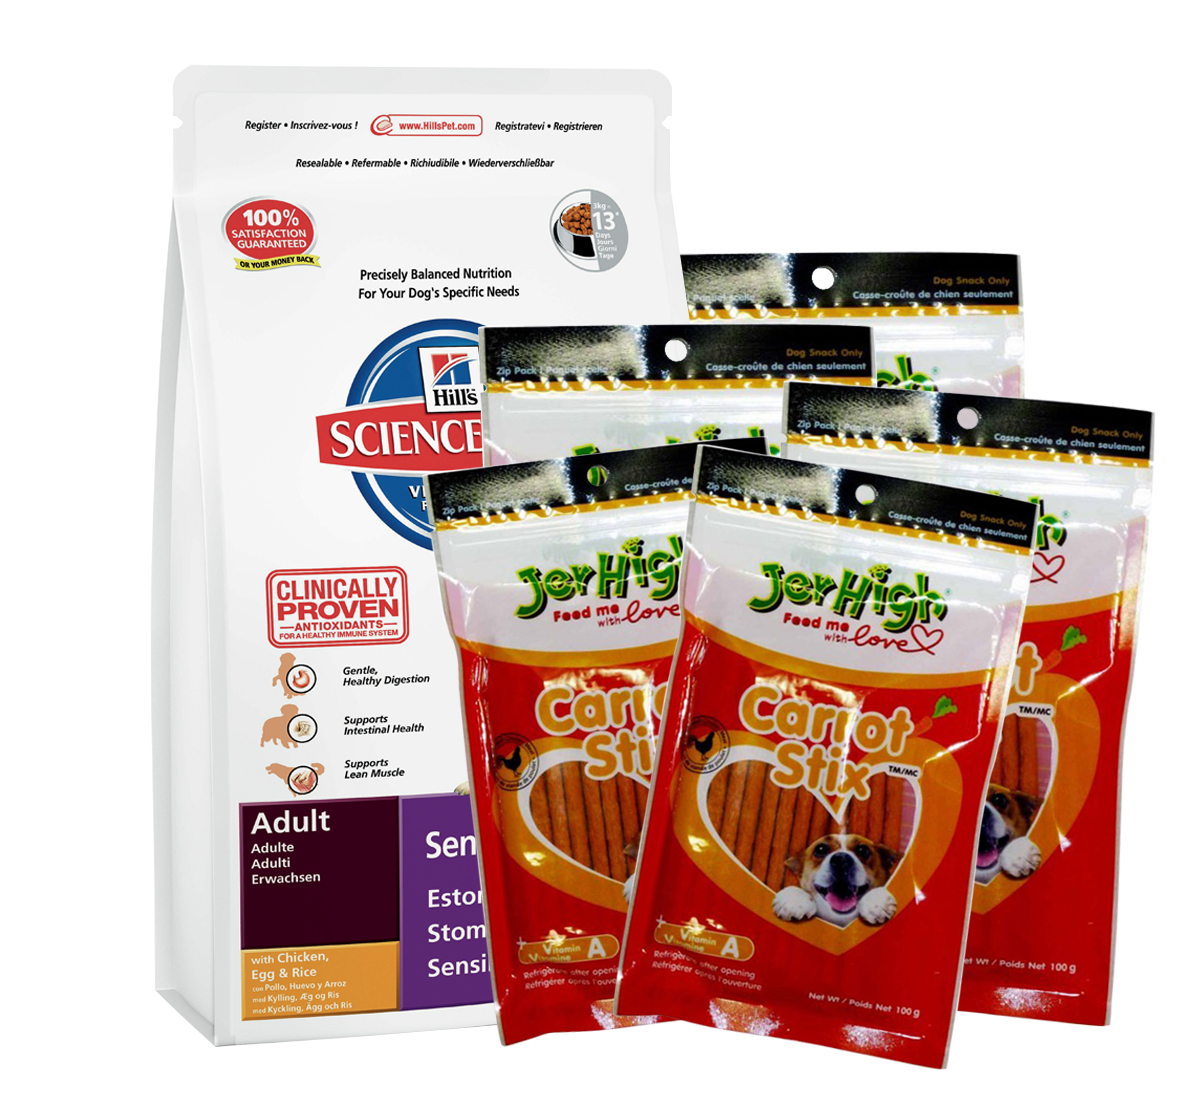 Hills Science Plan Canine Adult Sensitive Stomach Chicken - 3 KG With JerHigh Carrot Stick Dog Treats